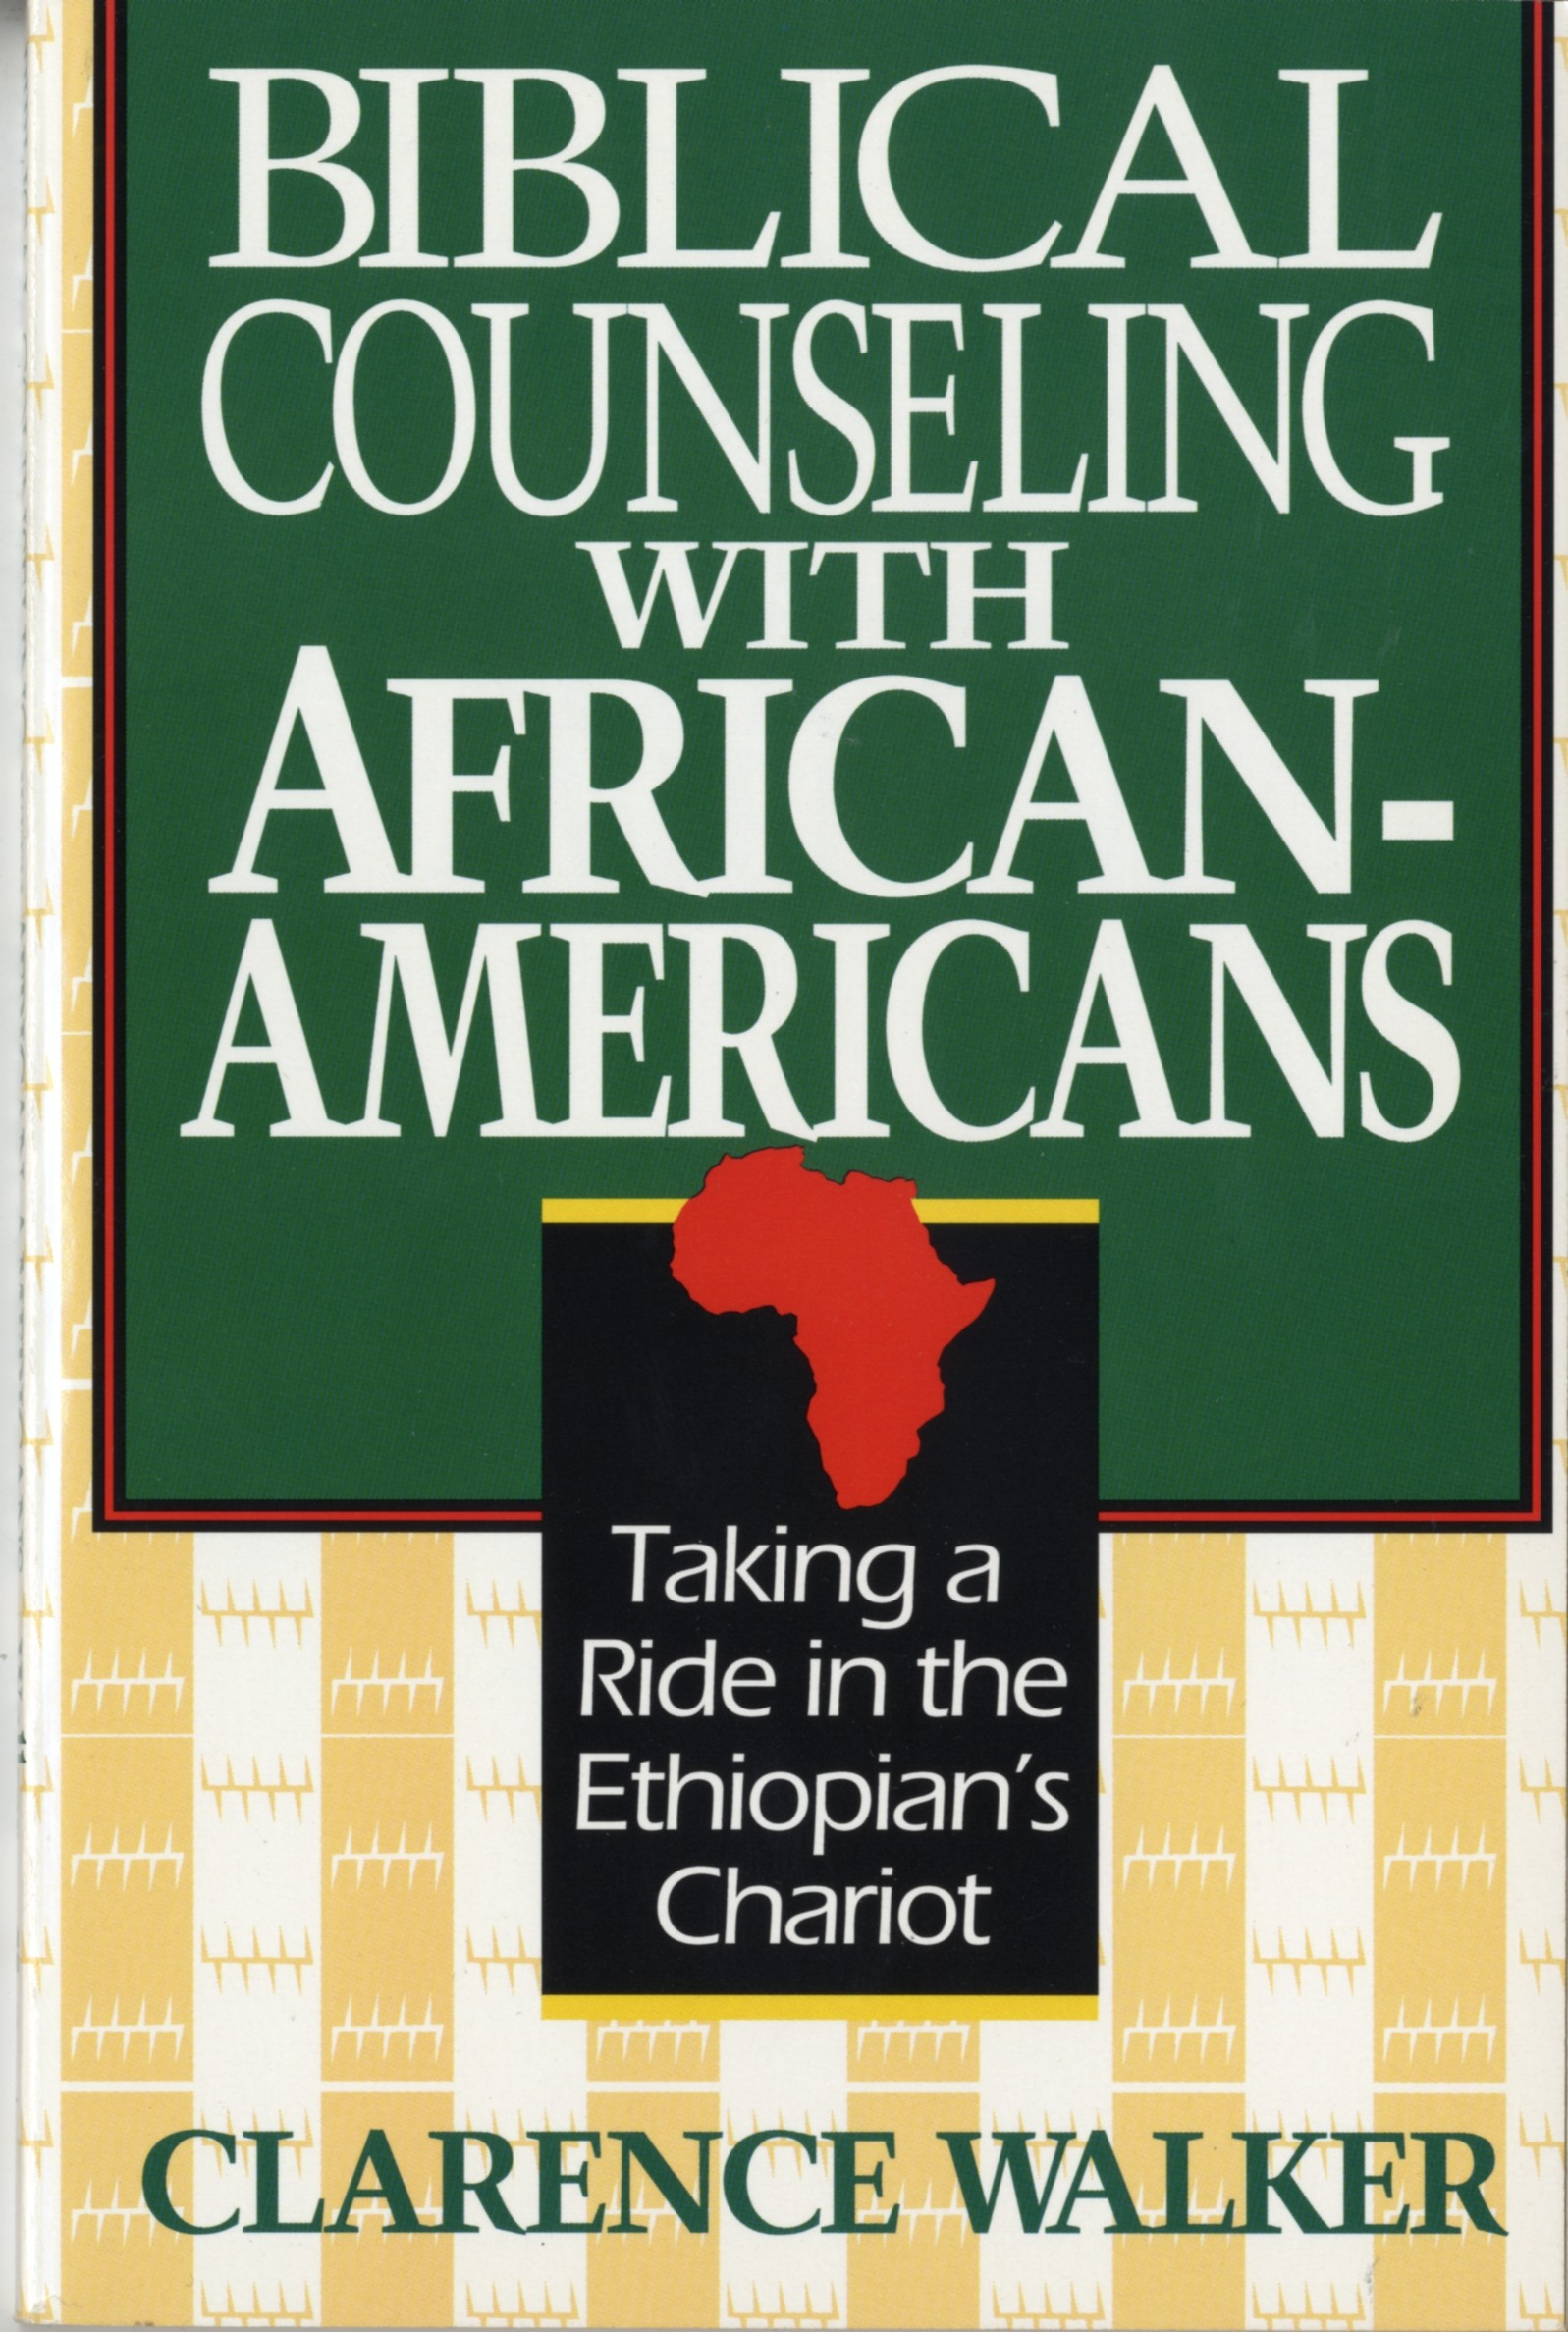 Biblical Counseling with African Americans: Taking a Ride in the Ethiopian's Chariot